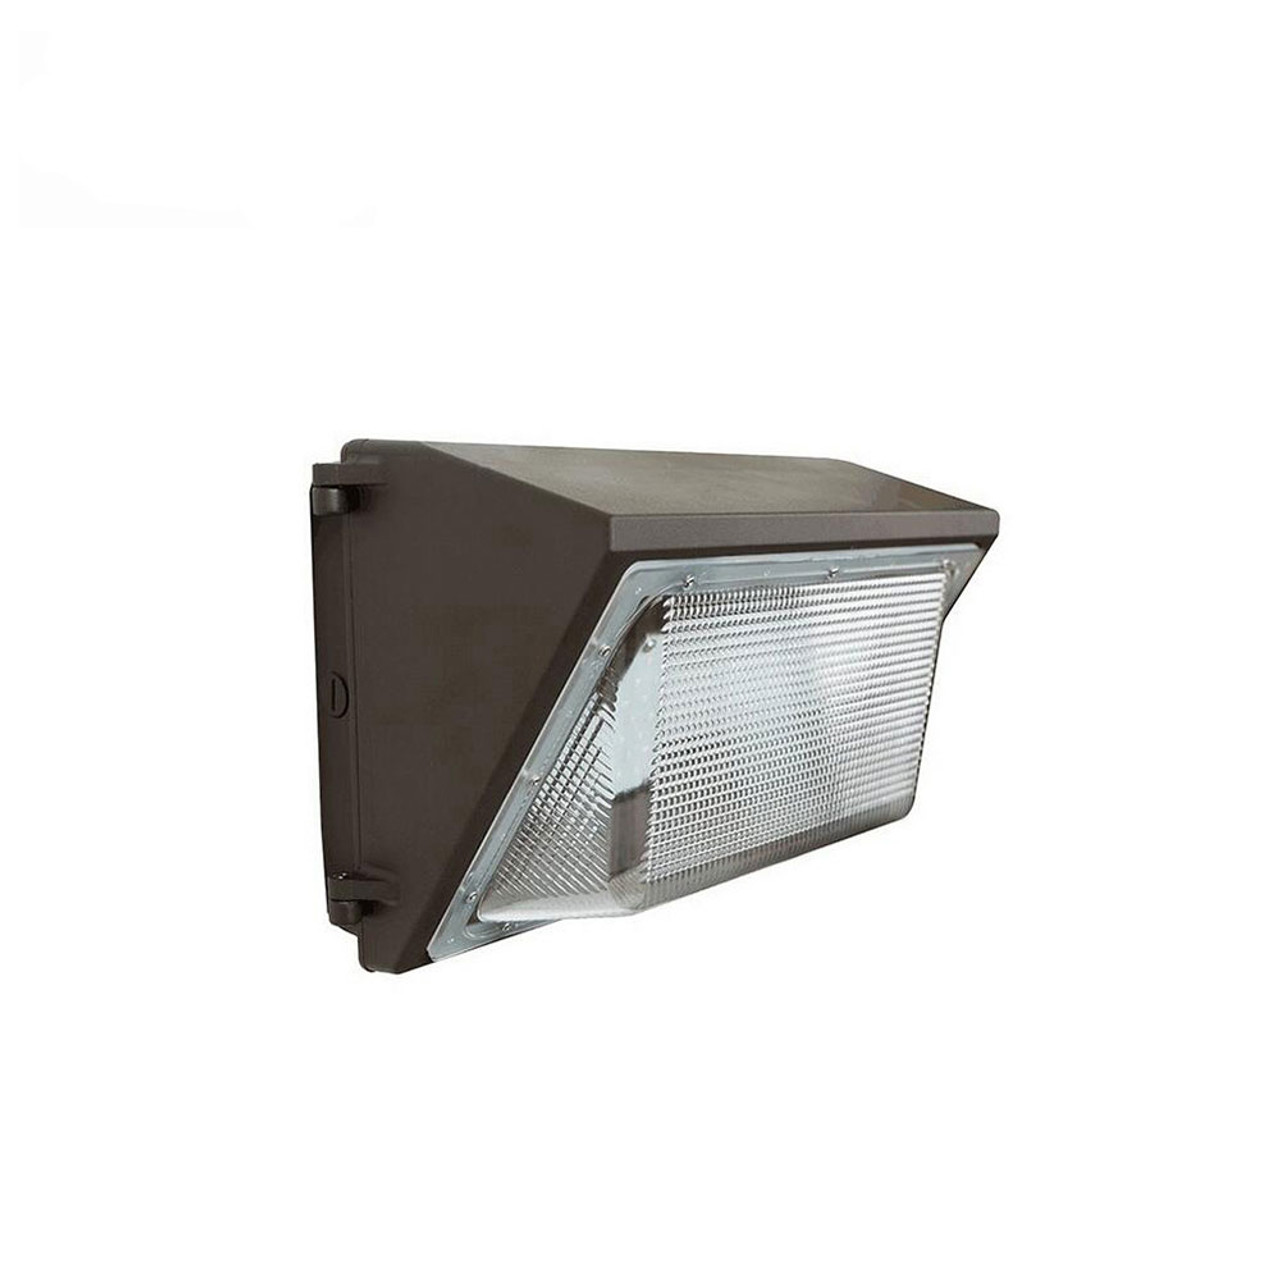 LED Wall Pack, 100 Watt, 12000 lumen, 5000 Kelvin, 100-277 volt, UL and DLC Listed